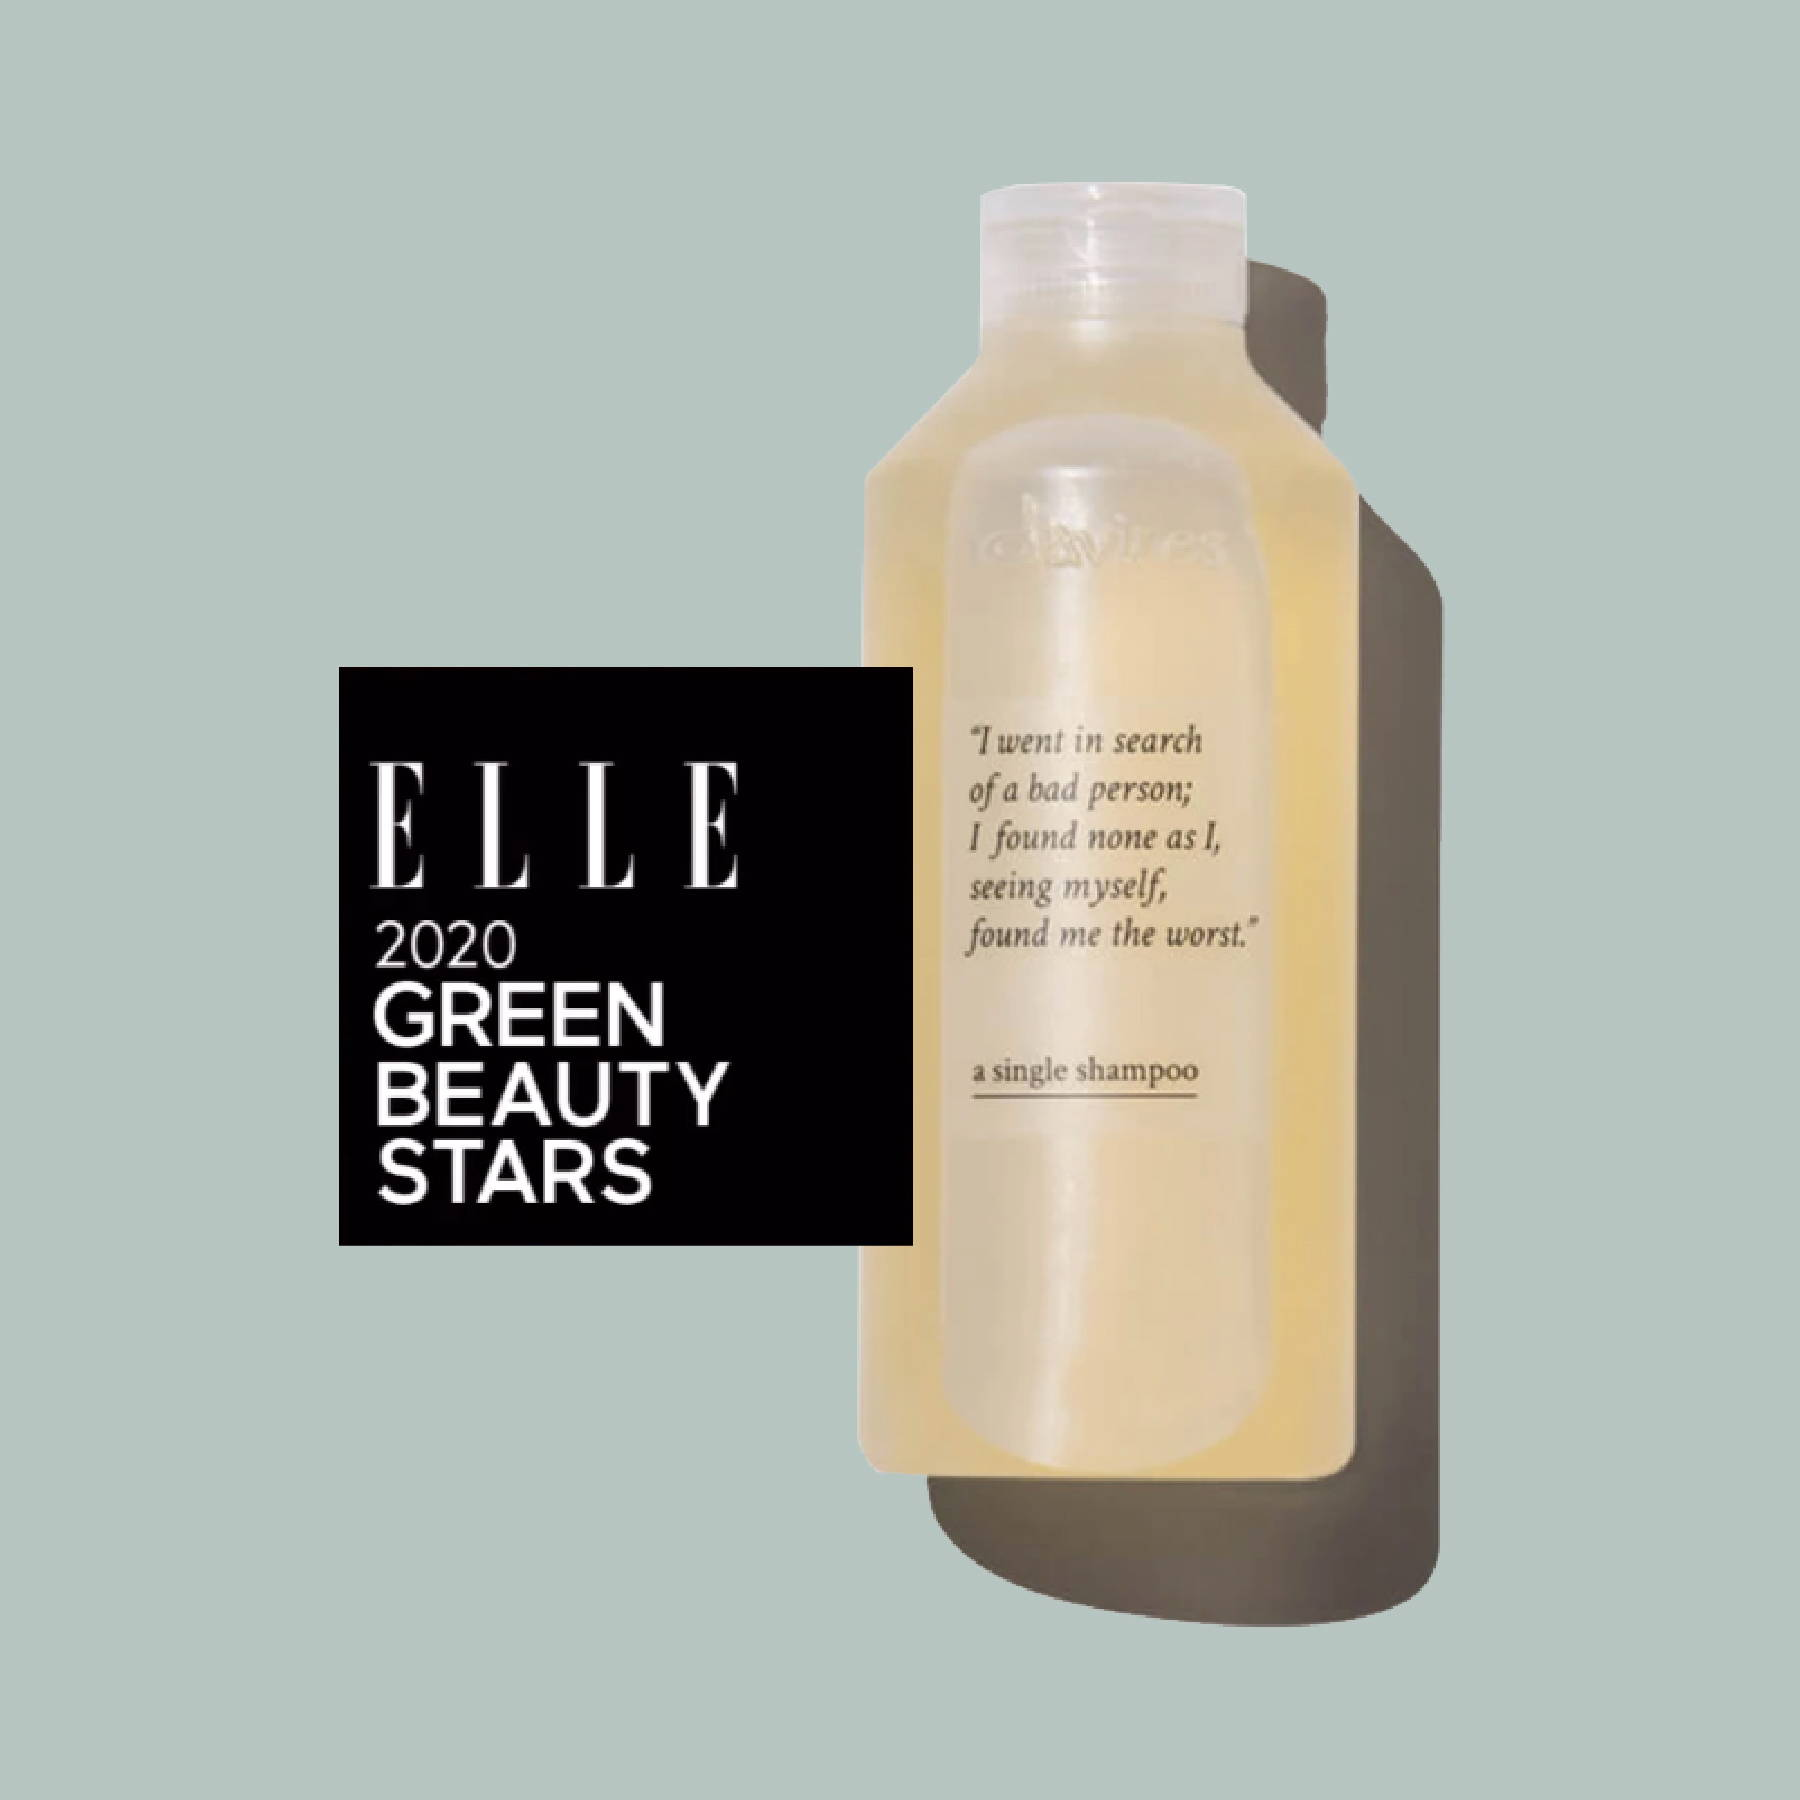 A Single Shampoo award winning Elle